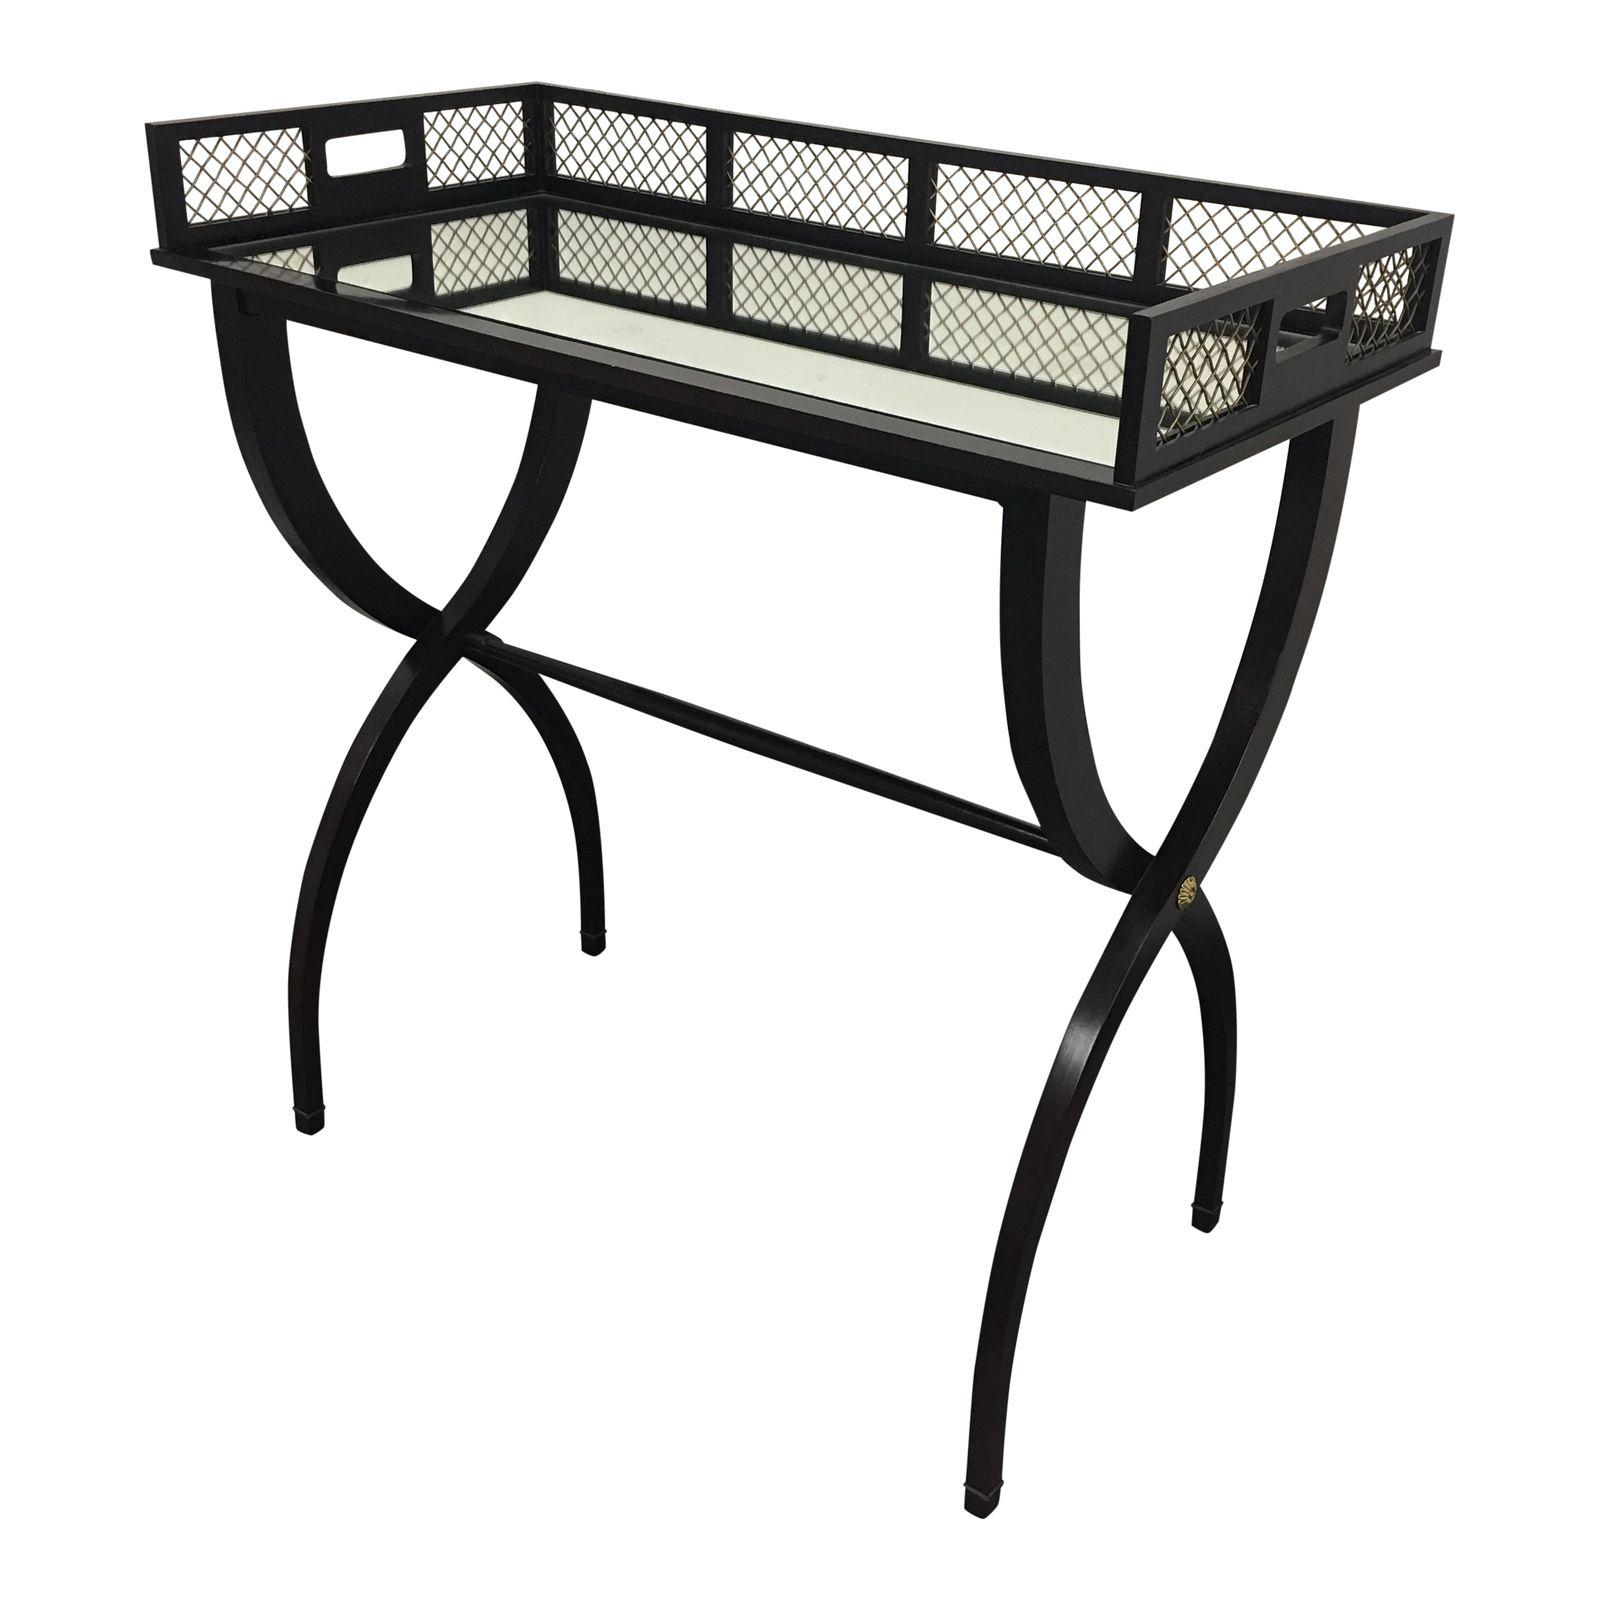 Barbara Barry For Baker Drinks Tray Table Original 6 000 00 Design Plus Gallery